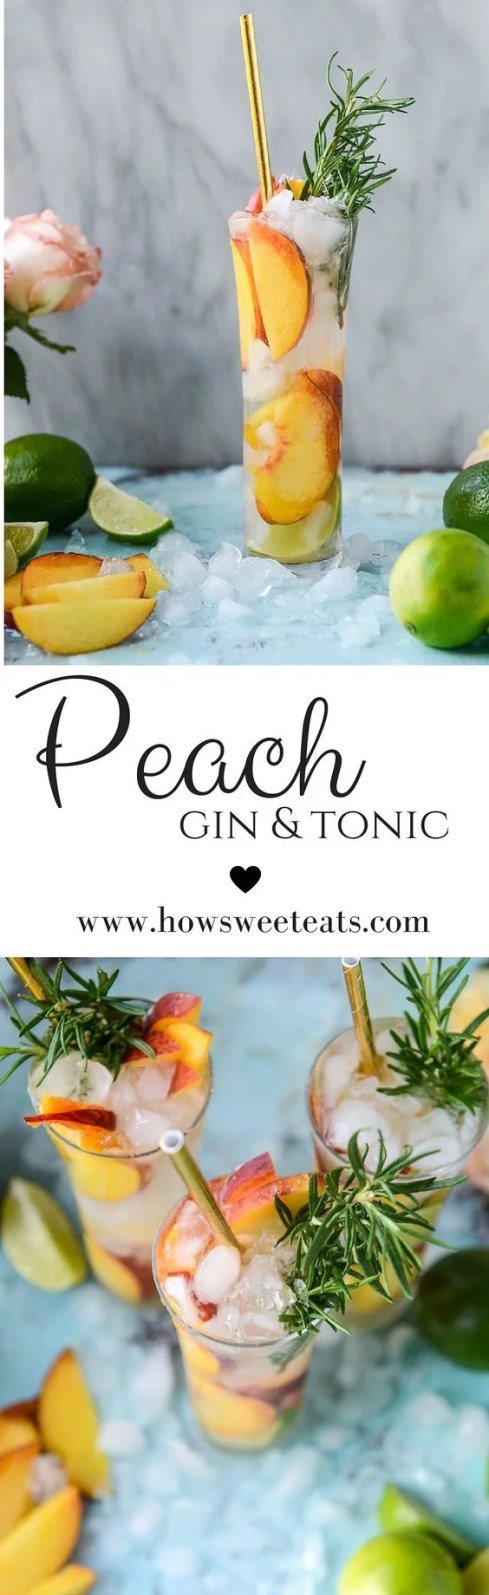 Peach gin and tonic